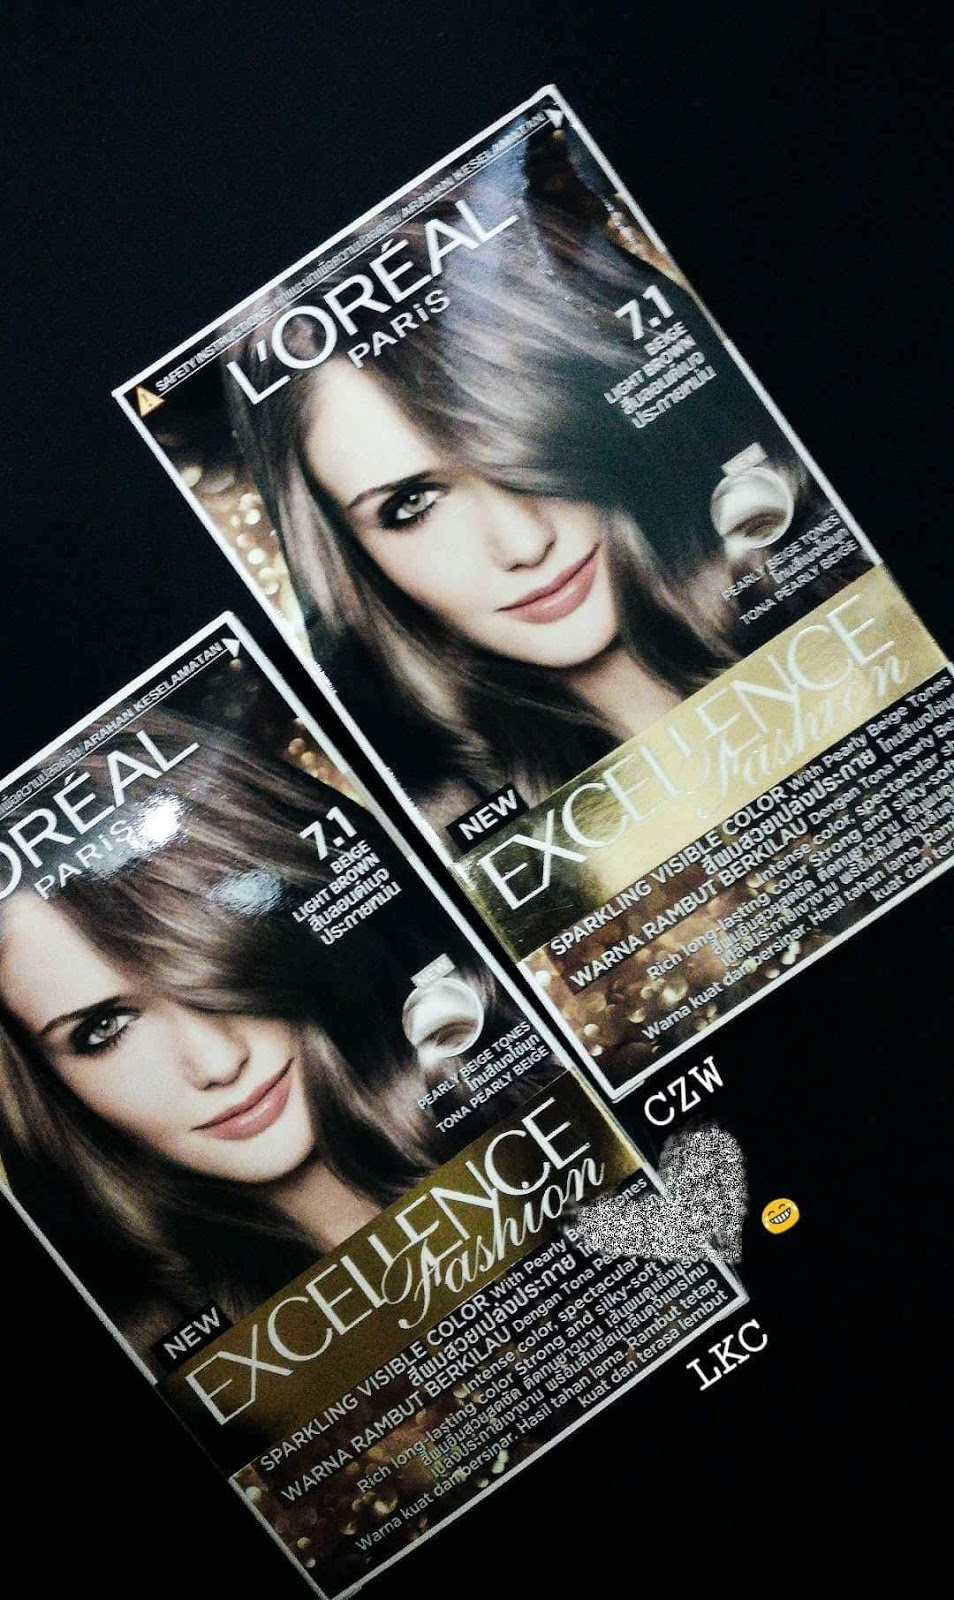 Loreal 71beige Light Brown Review Pearly Beige Tone